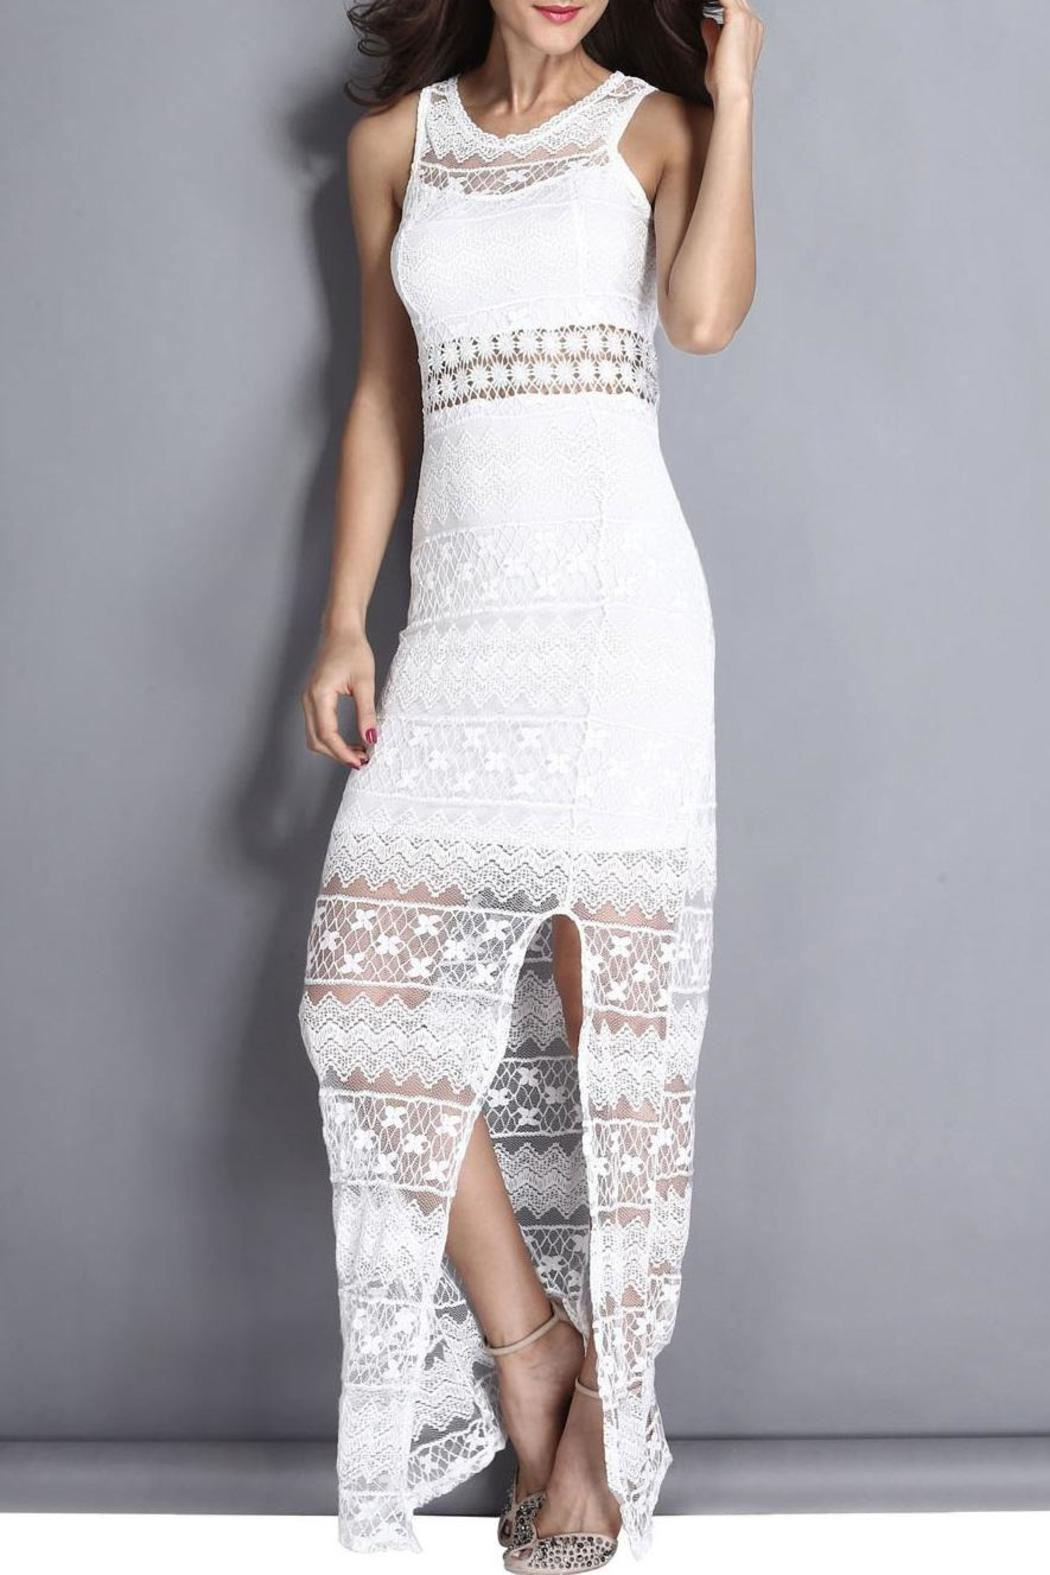 Adore Clothes & More White Lace Dress - Main Image